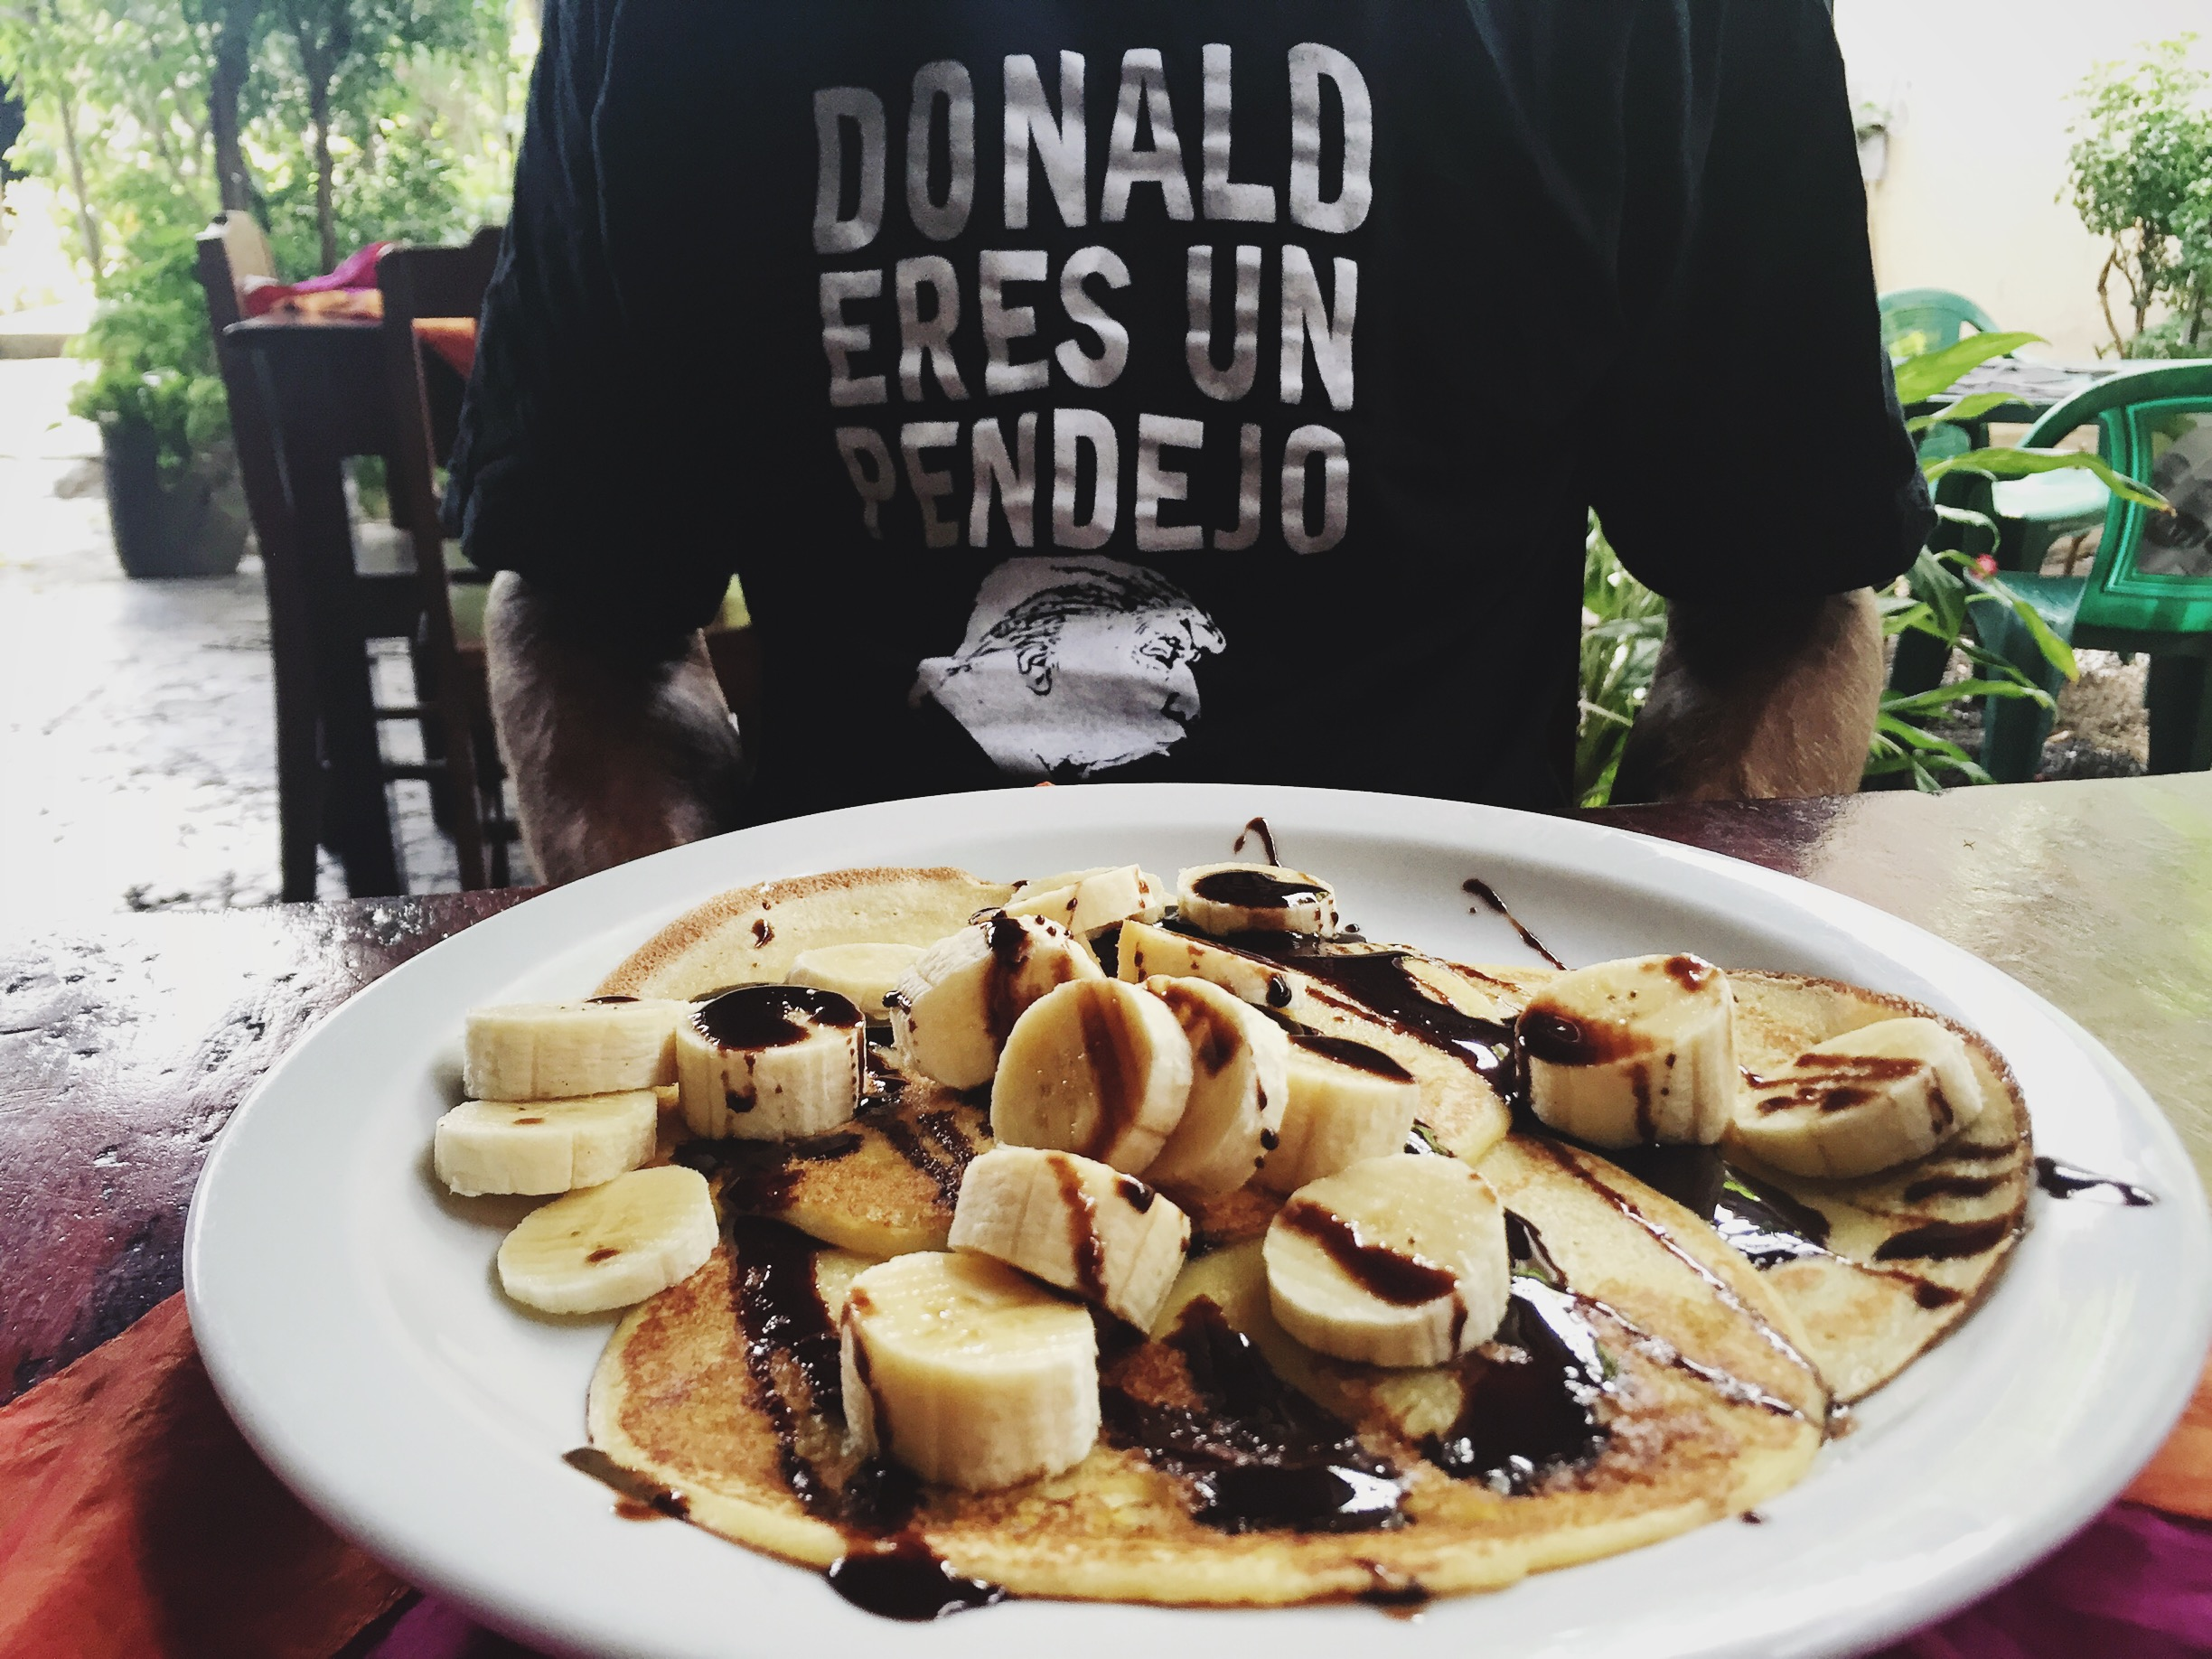 We stayed at a lovely hostel that served crepes, bananas and Nutella for breakfast. Political statements were well received by locals and travelers alike! Looks like this shirt won't be going out of fashion for at least four years.